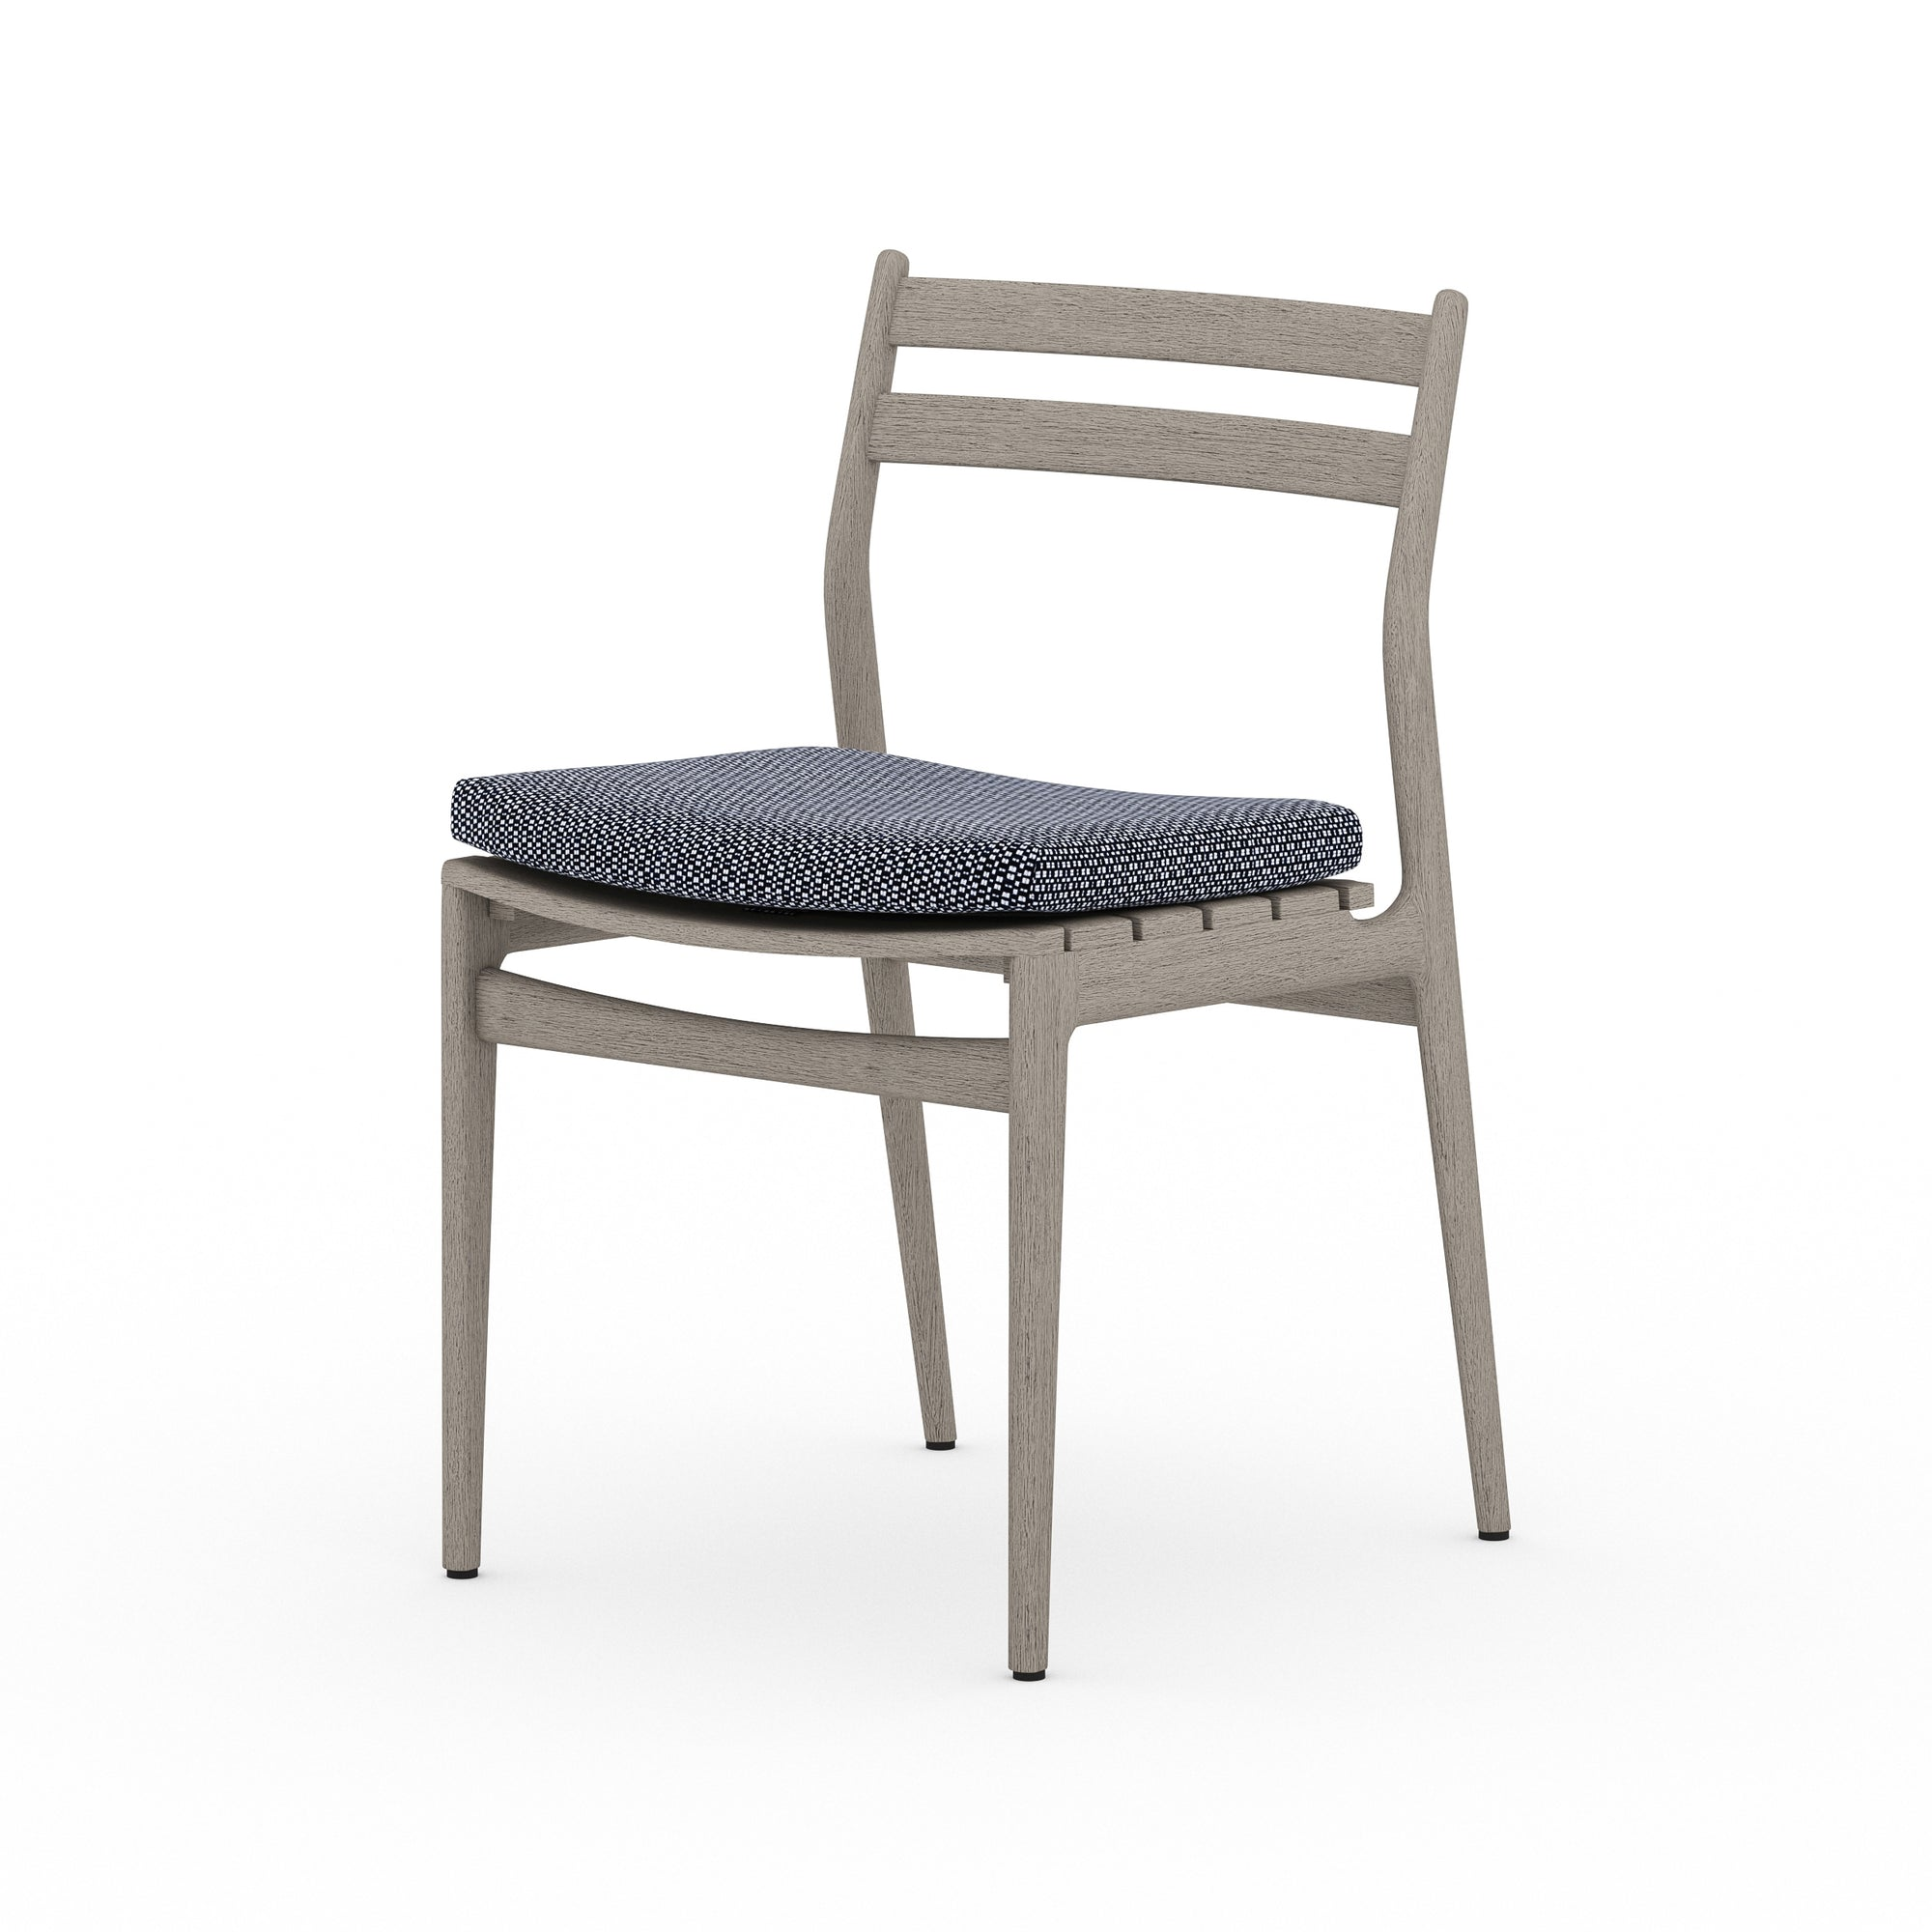 Atherton Outdoor Dining Chair - Grey/Navy